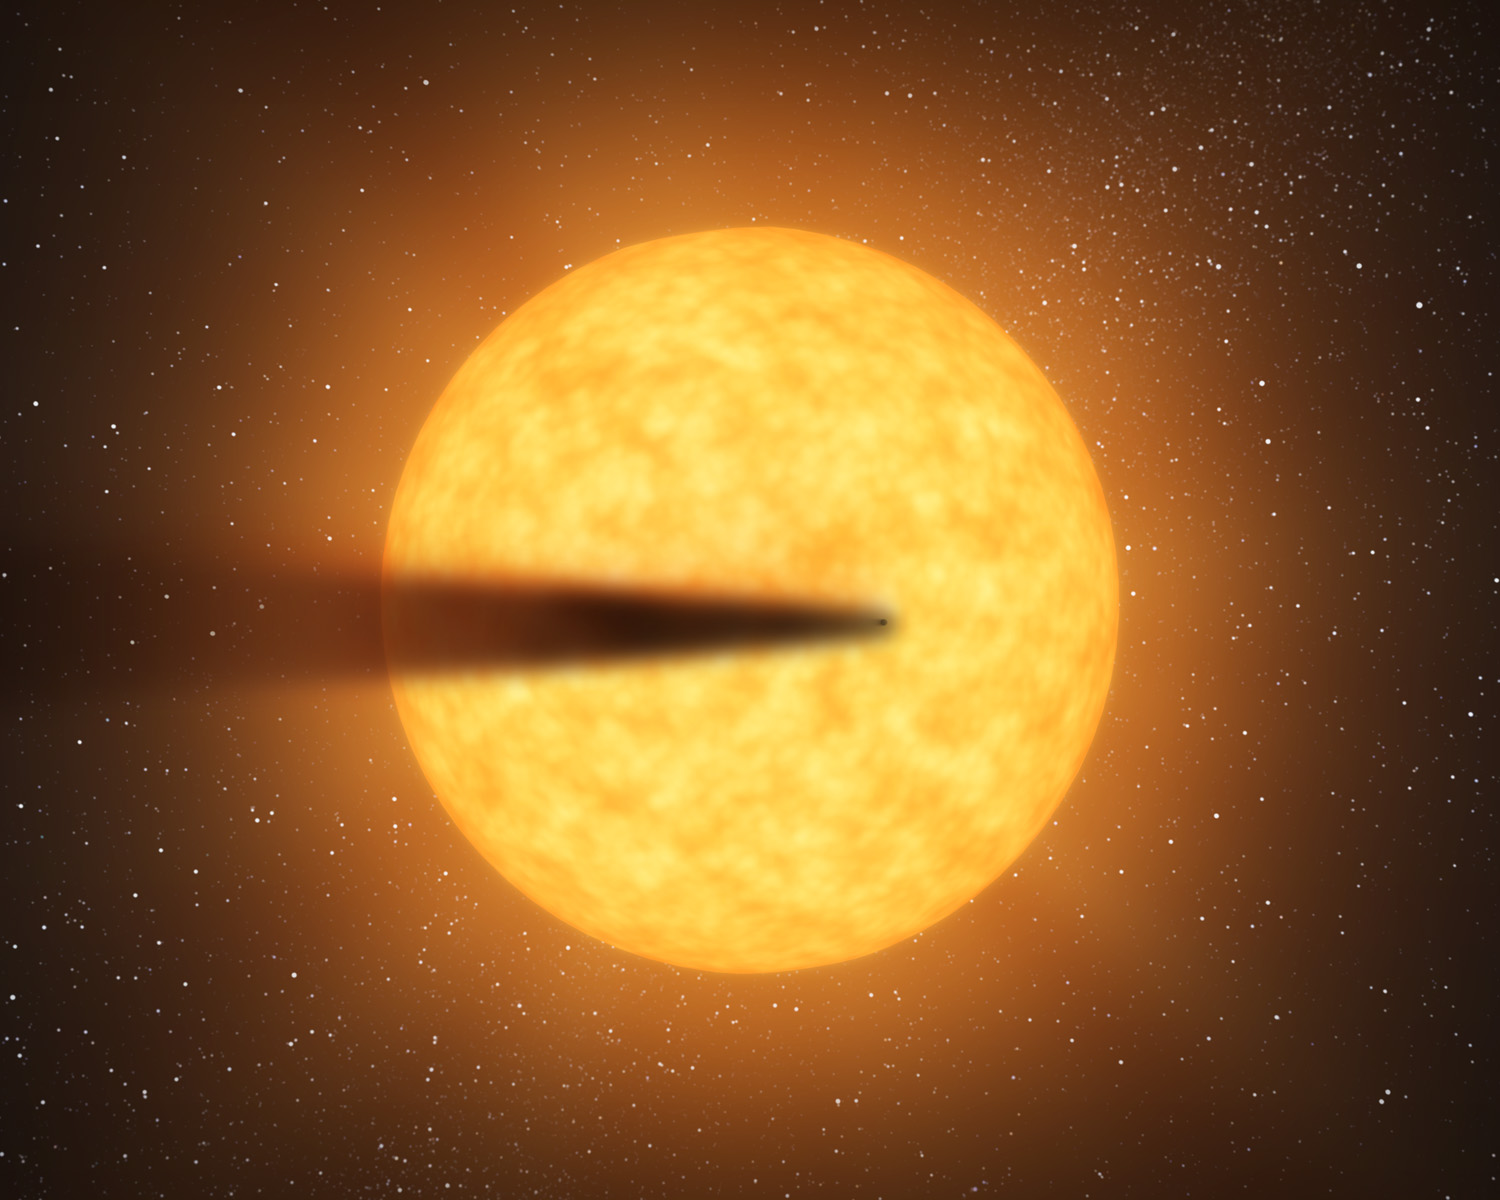 Disintegrating Alien Planet Has Comet-Like Tail